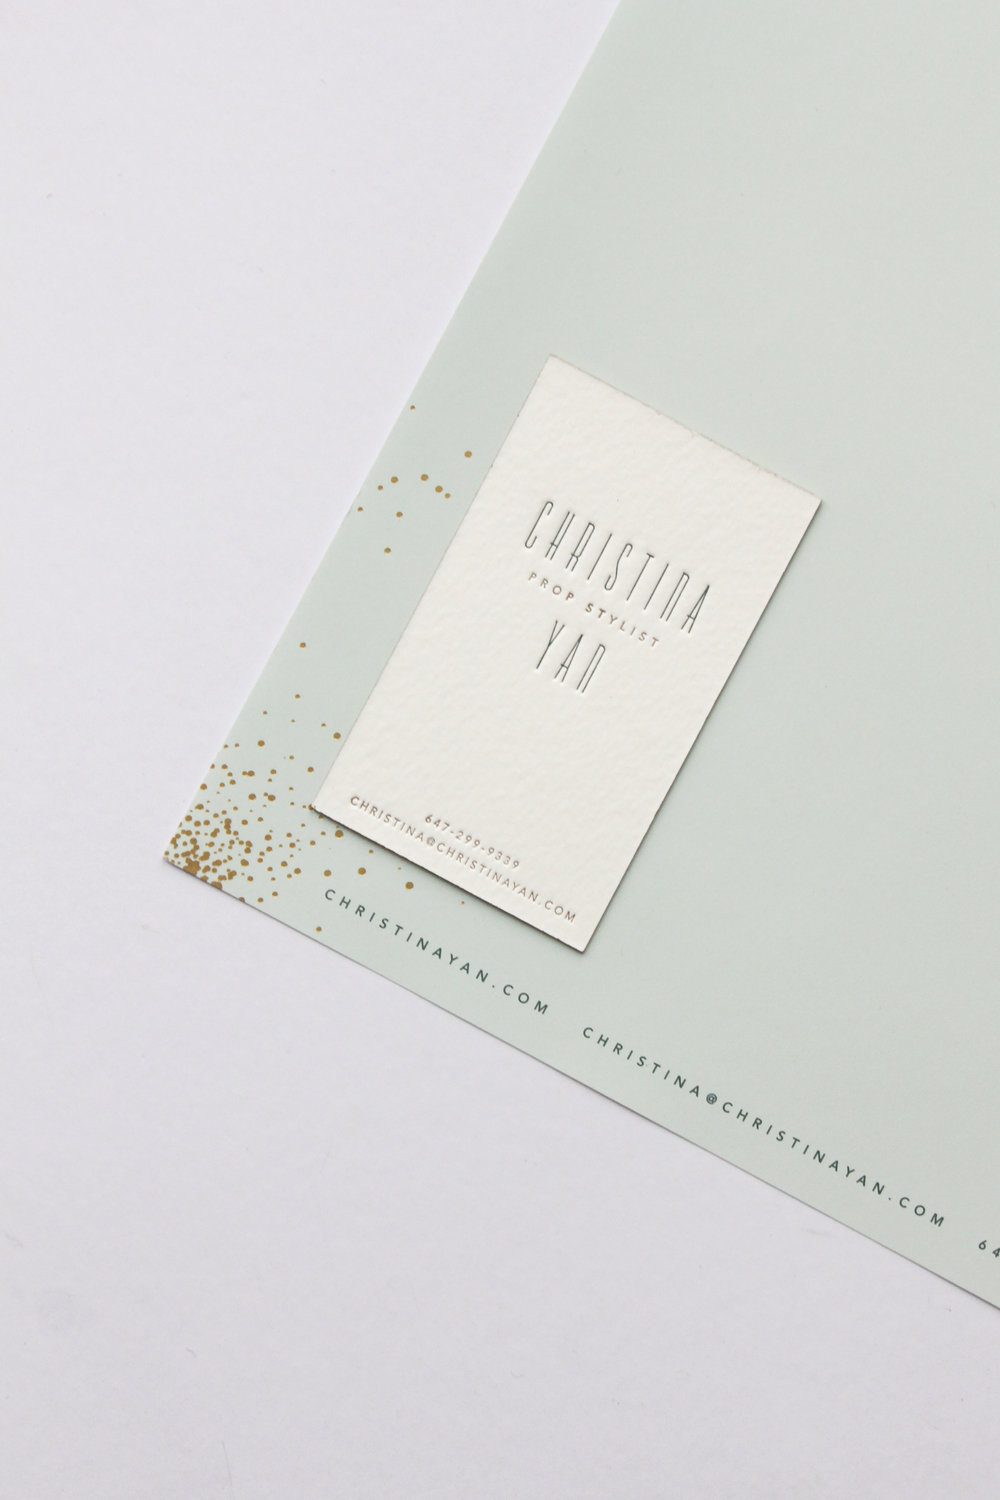 Christina Yan Branding by Belinda Love Lee